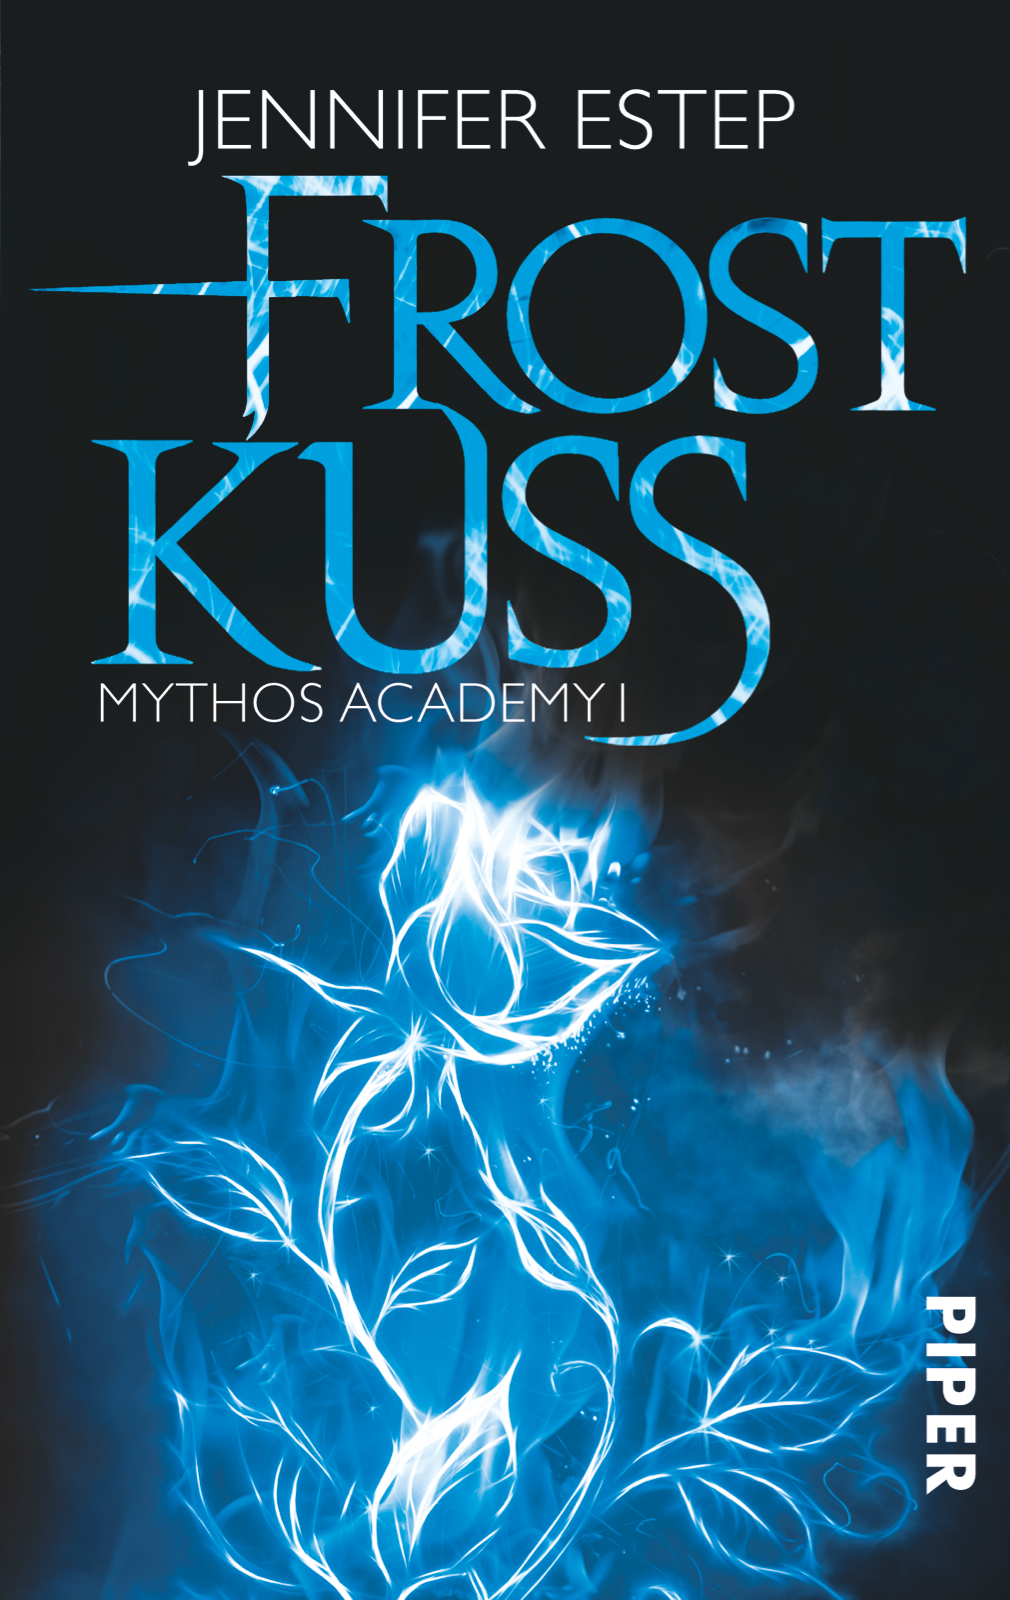 http://nothingbutn9erz.blogspot.co.at/2015/05/frostkuss-jennifer-estep.html